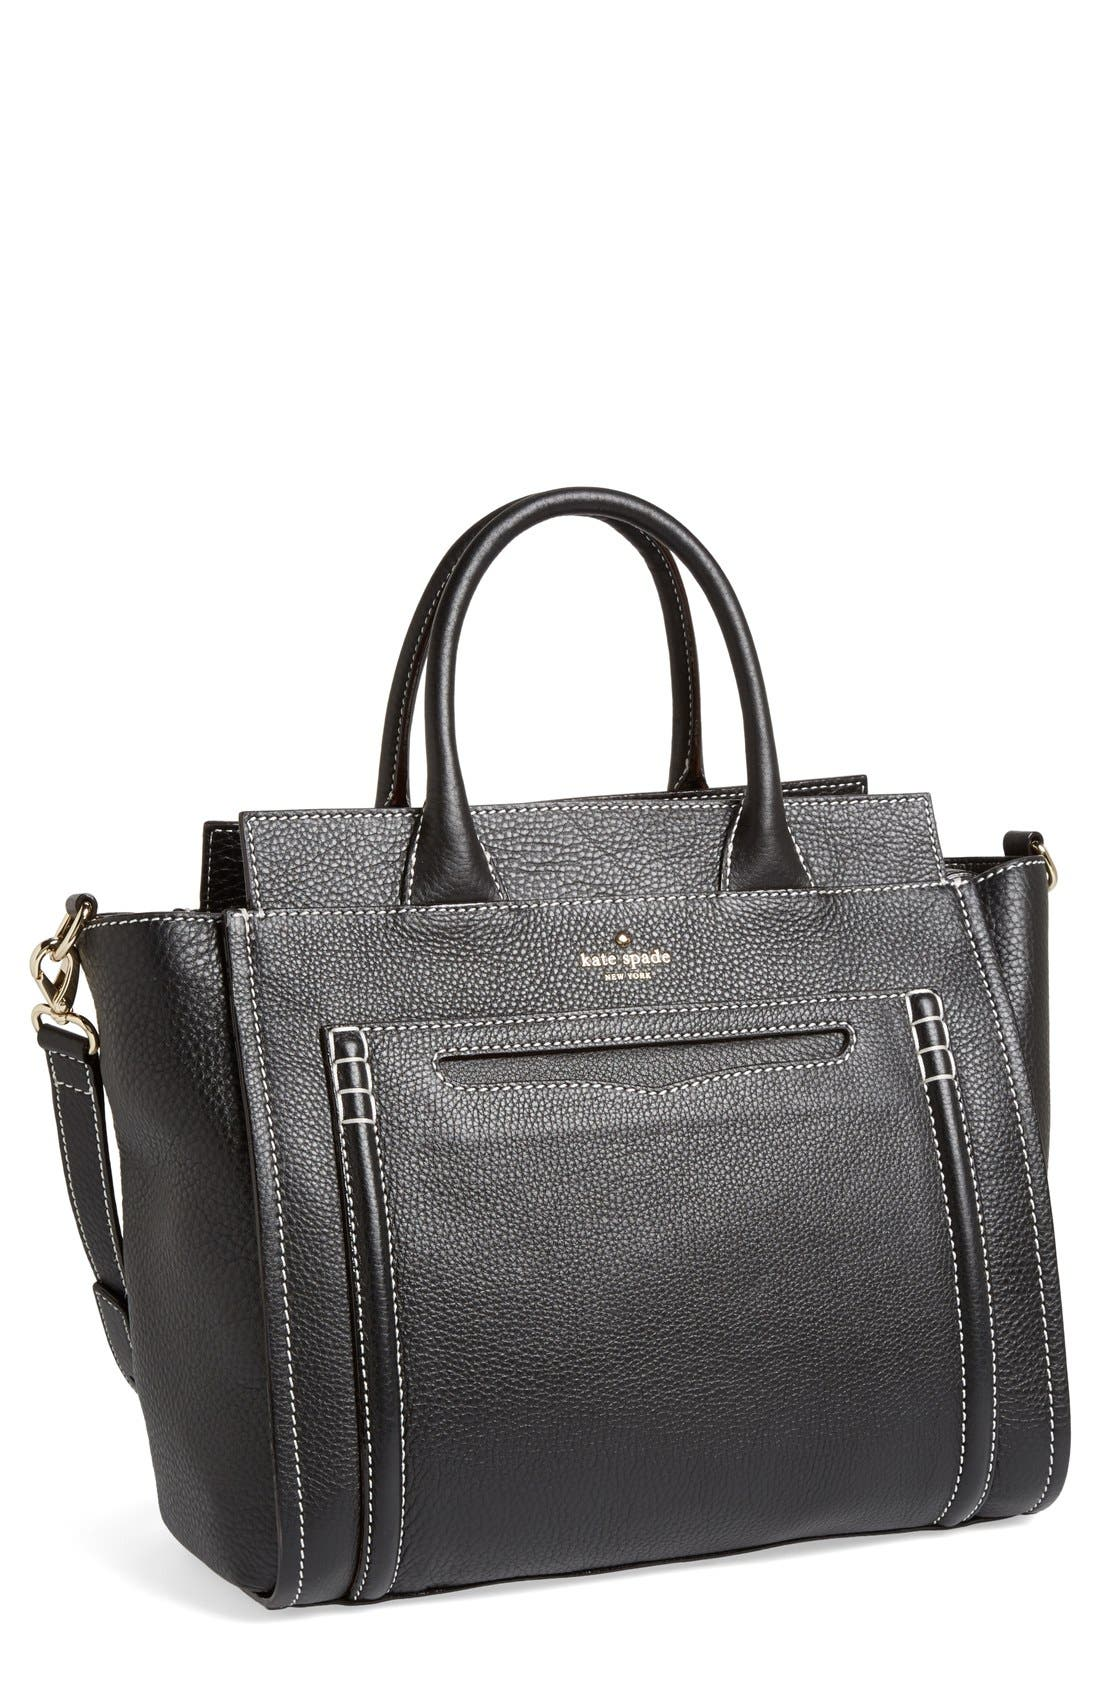 Main Image - kate spade new york 'claremont drive - marcella' shoulder tote